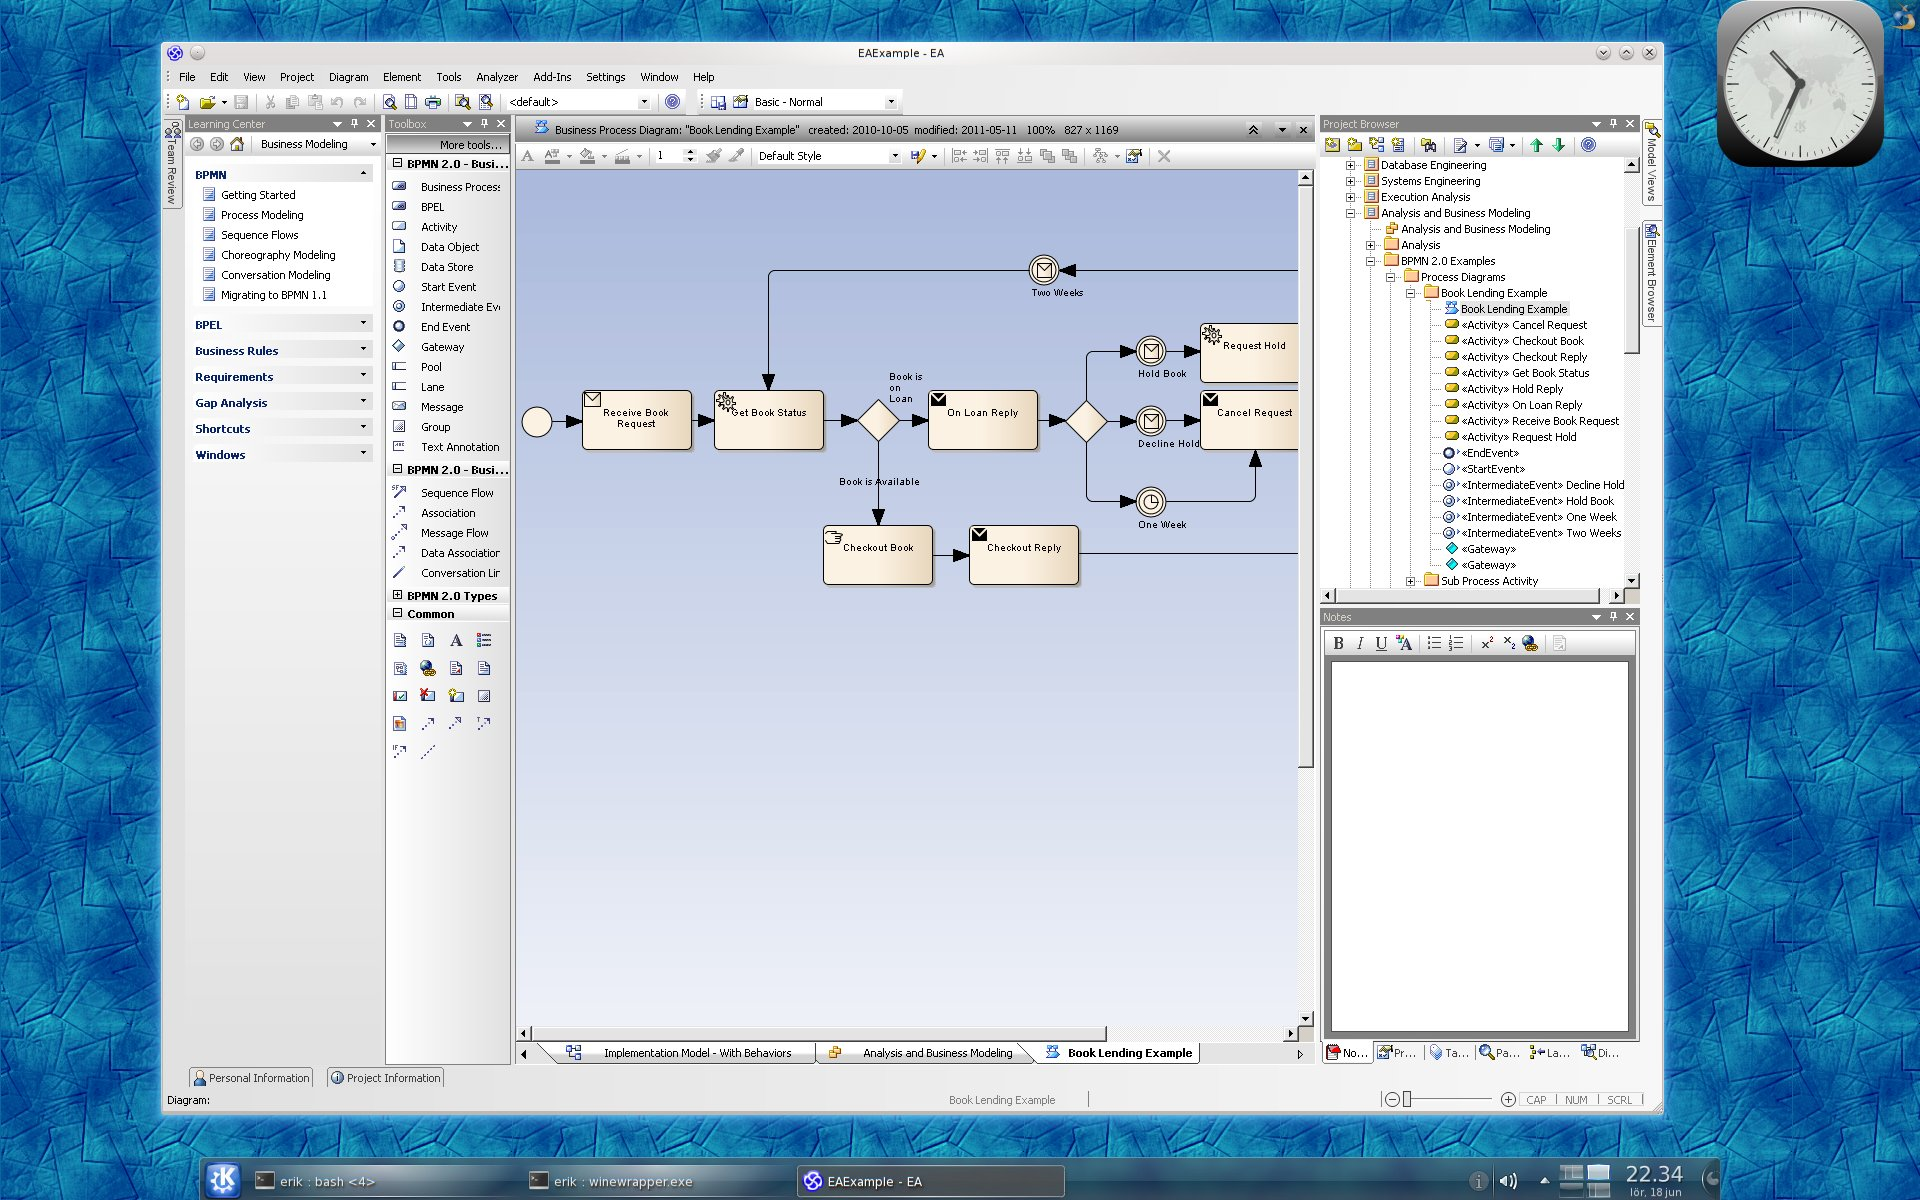 Enterprise Architect 9.0 on Linux with CrossOver 10.